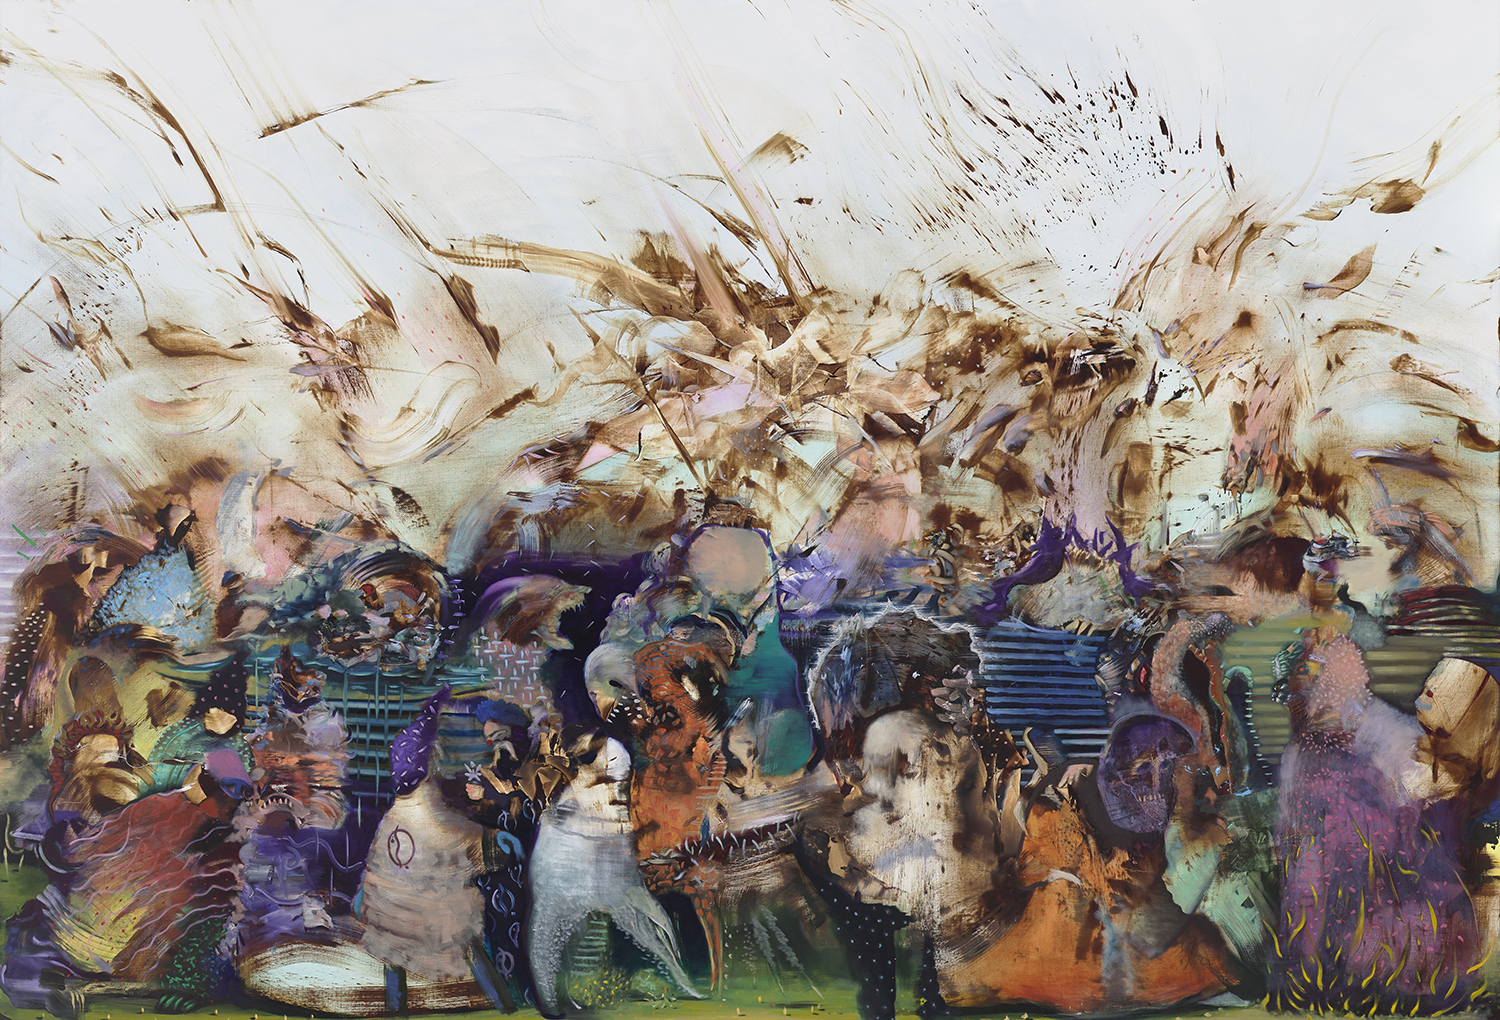 Ali Banisadr, We work in shadows, 2017 Oil on linen Courtesy the Artist and Sperone Westwater, New York